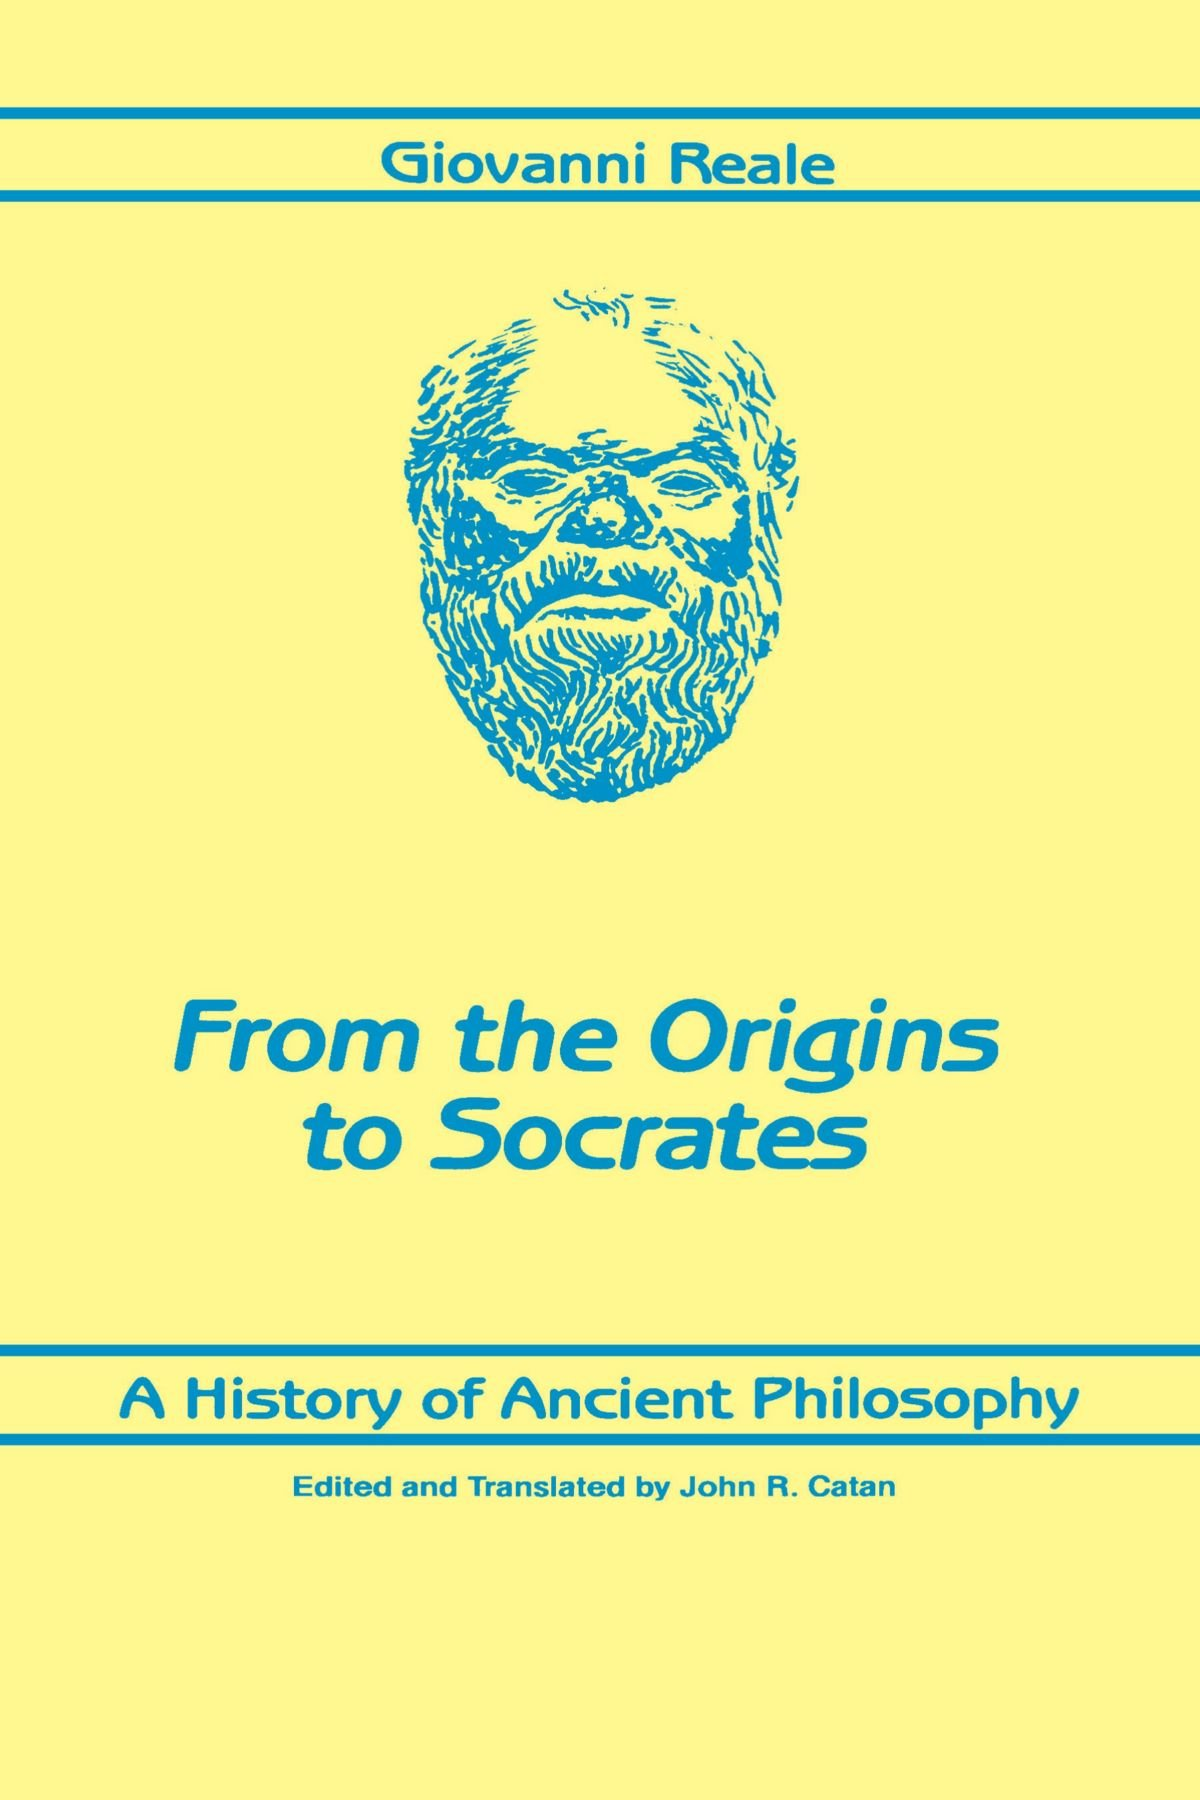 A History of Ancient Philosophy From the Origins to Socrates SUNY Series in Philosophy: Amazon.es: Reale, Giovanni: Libros en idiomas extranjeros